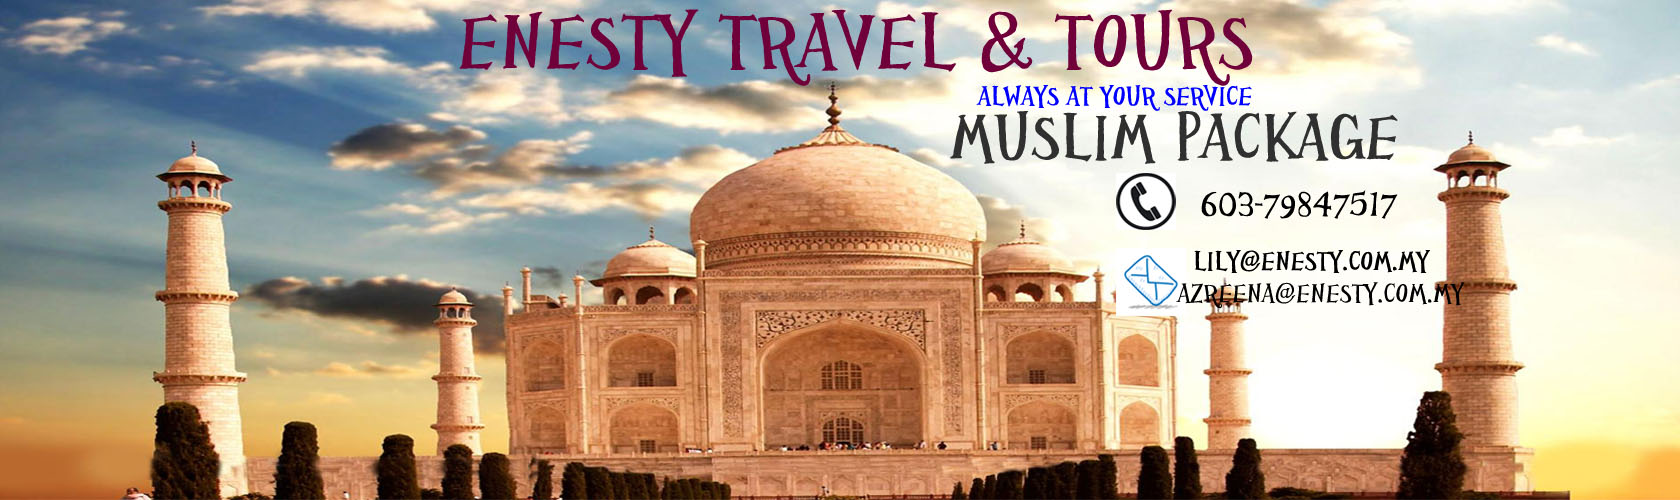 Enesty Travel & Tours